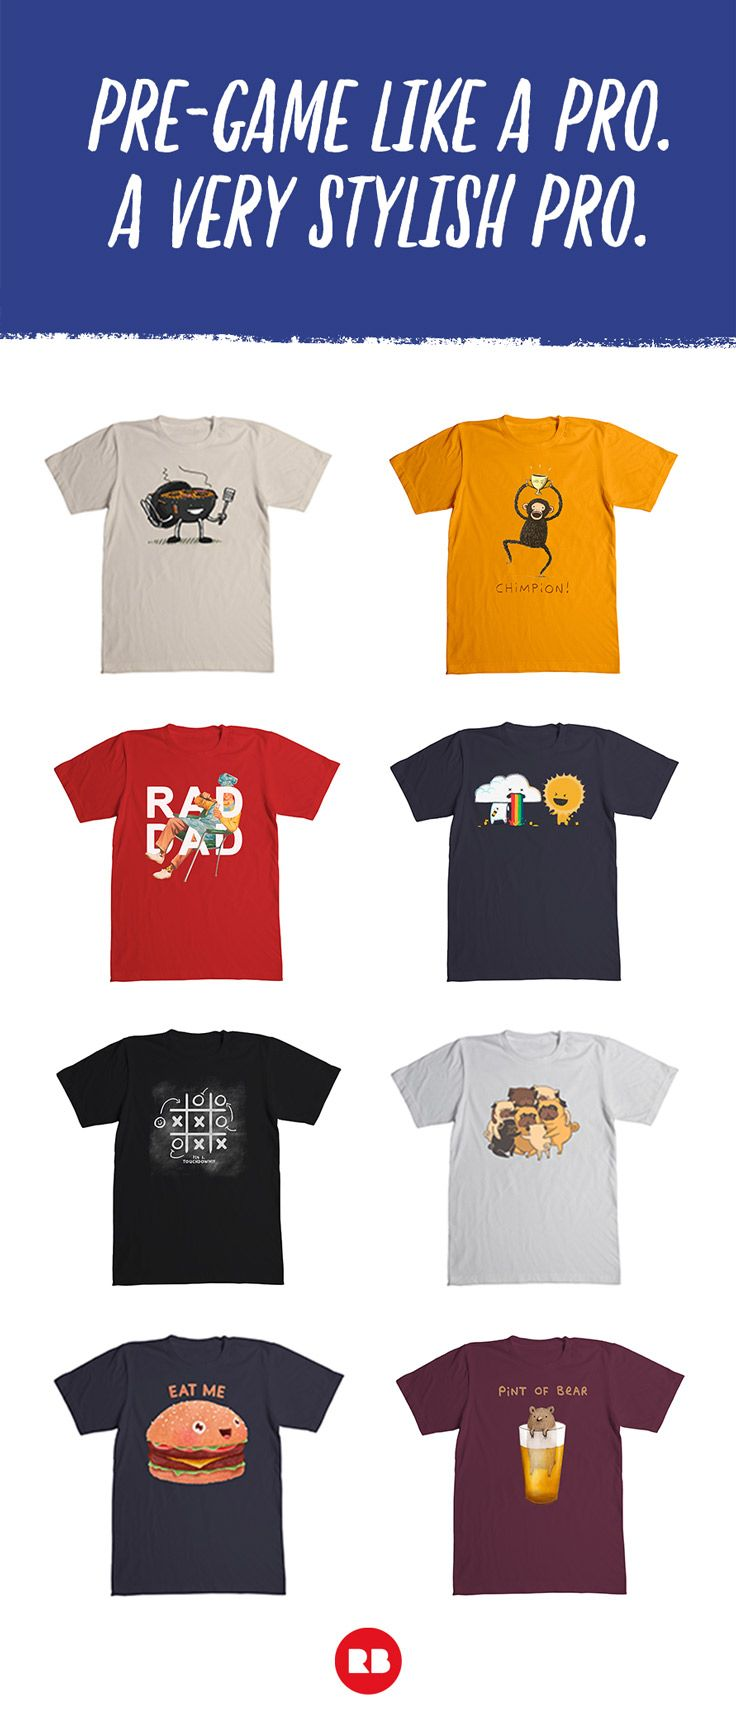 490d9f13 Pre-game like a pro with these funny t-shirts from Redbubble. A very  stylish pro. Get hyped for the big game with these awesome designs! # SuperBowl